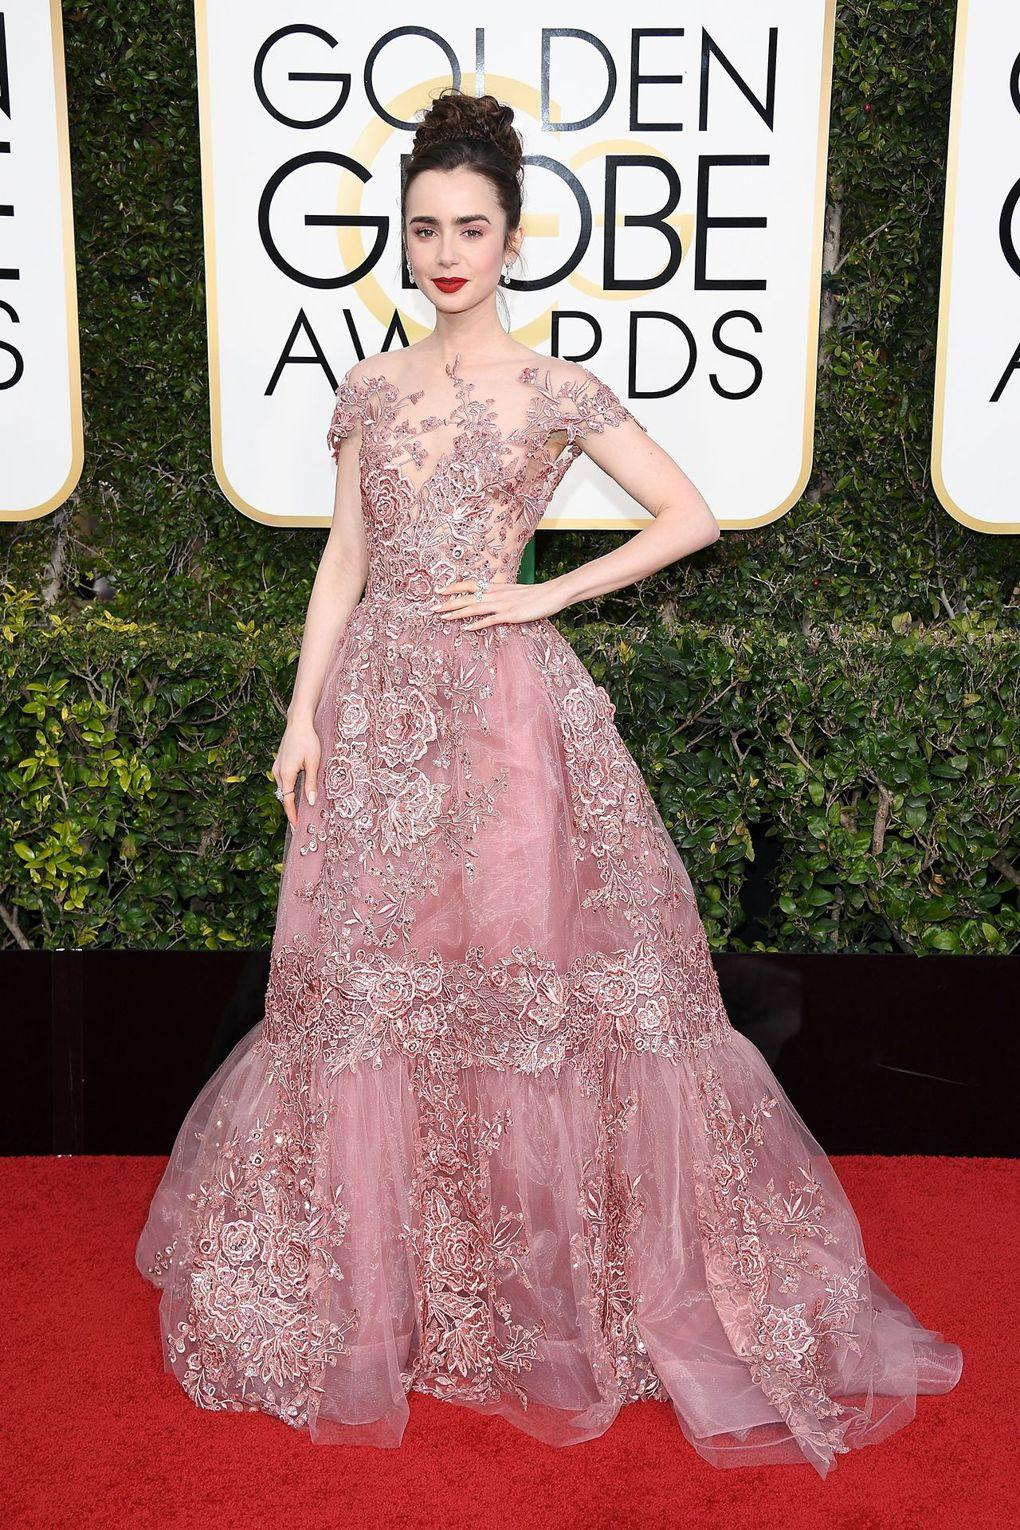 The Best Dressed from Golden Globe Awards - Lily Collins